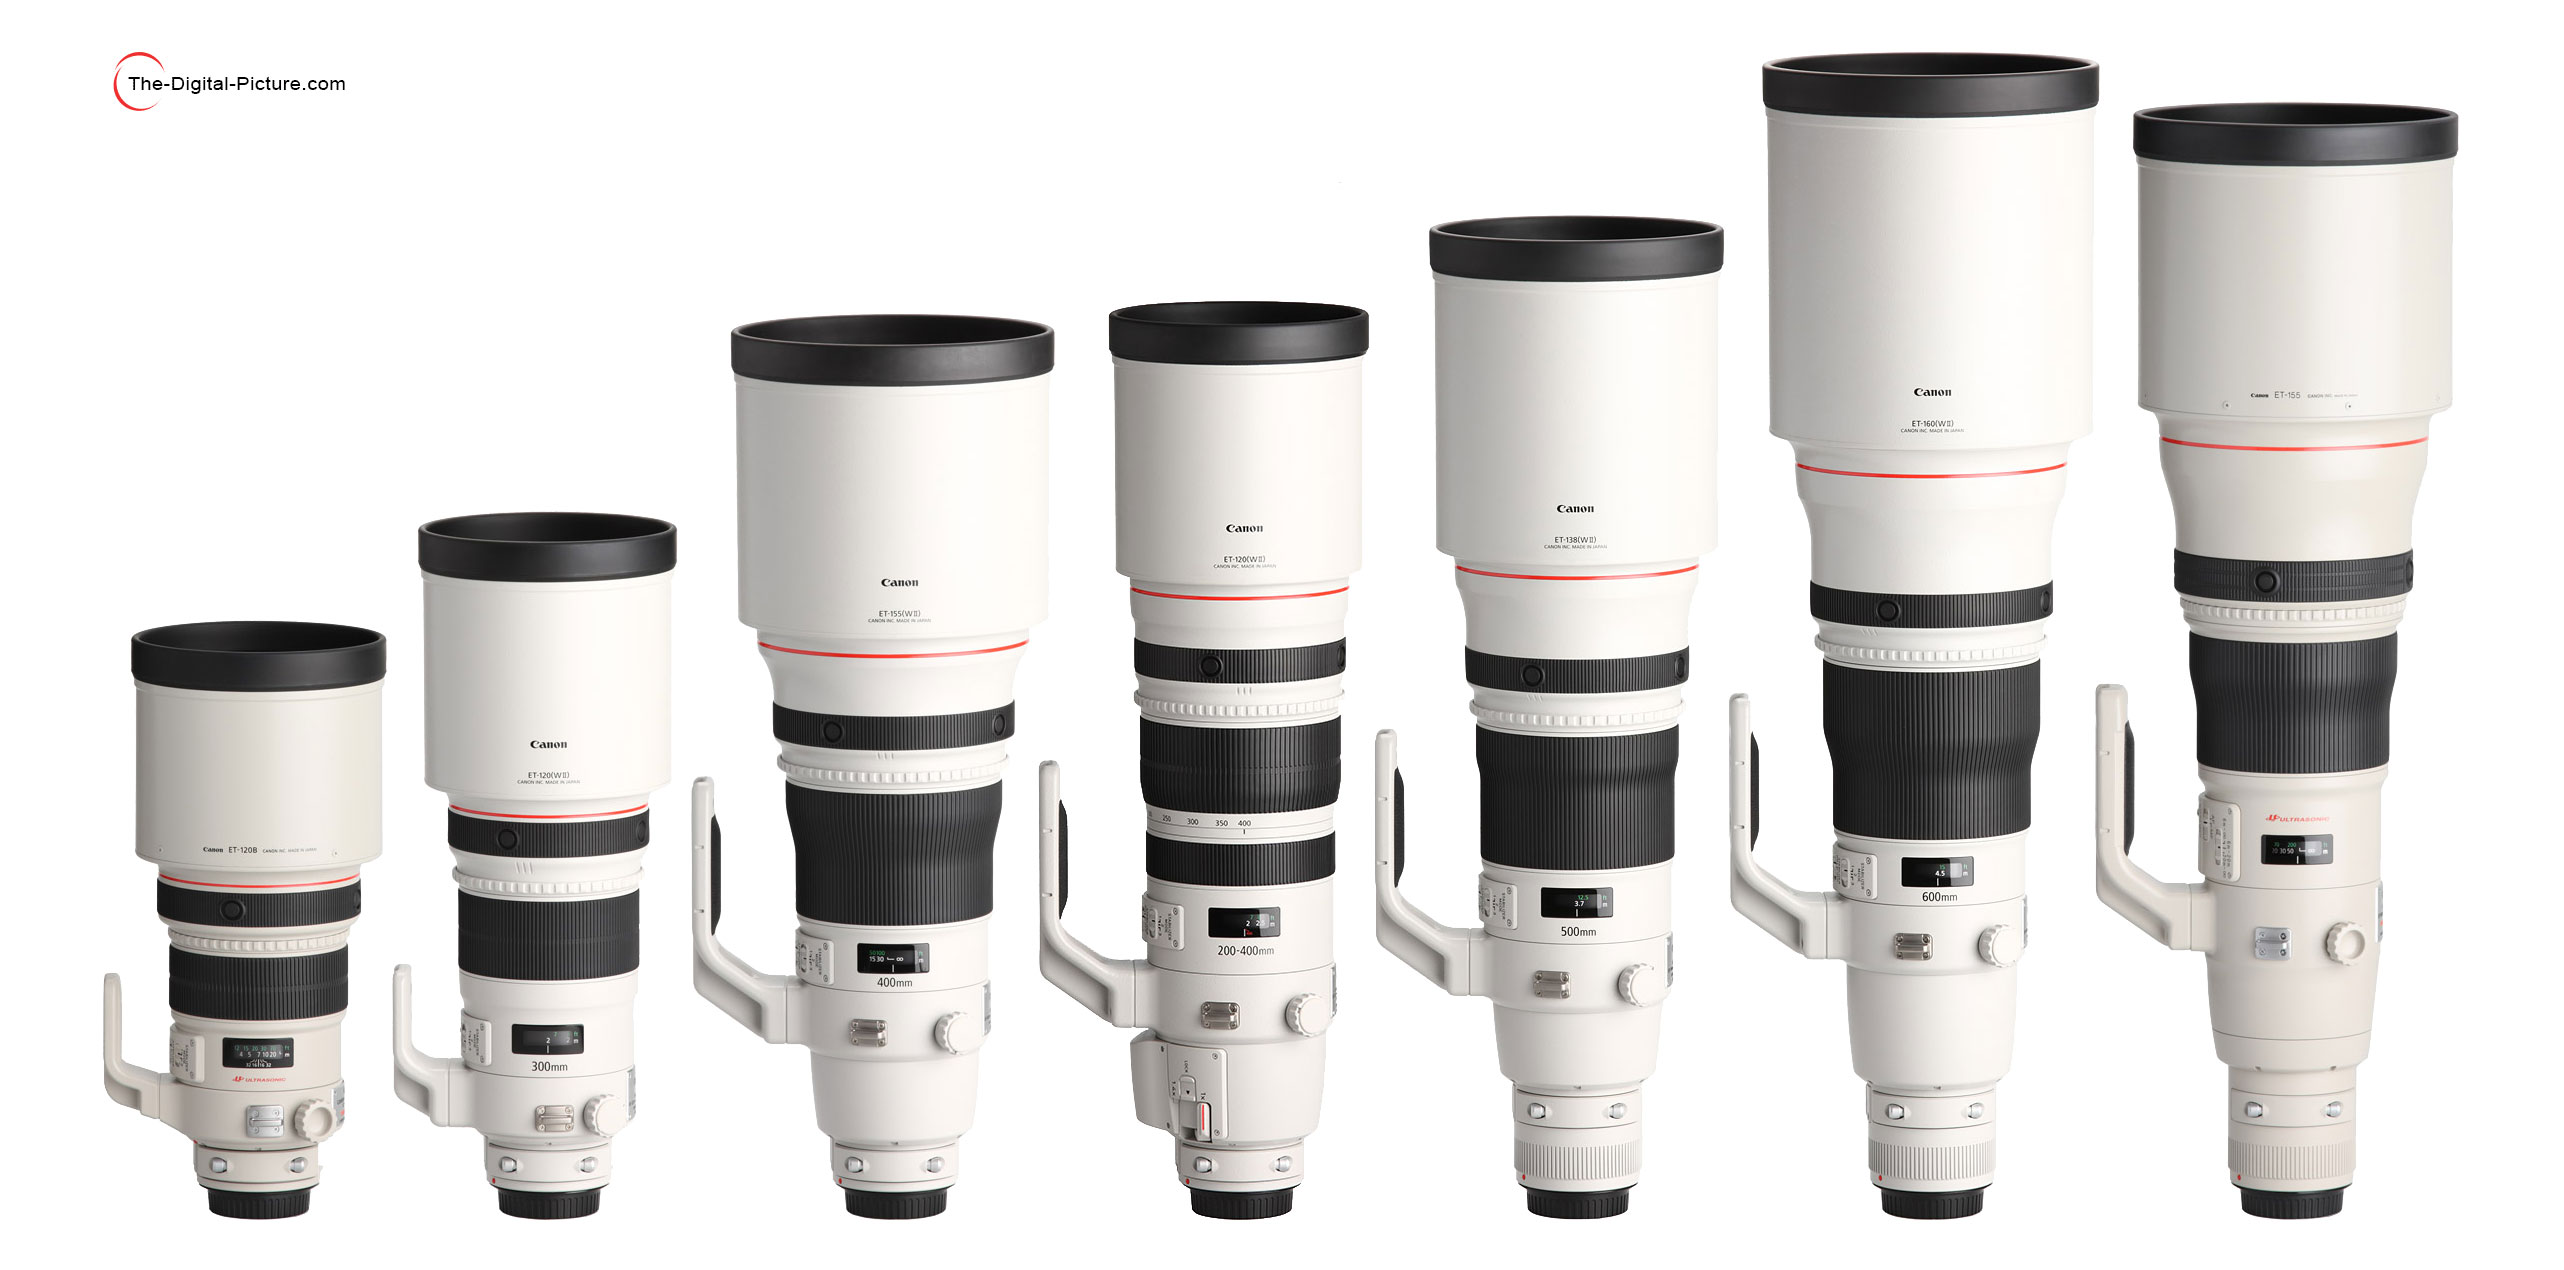 Canon Ef 200 400mm F 4l Is Usm Extender 1 4x Lens Review